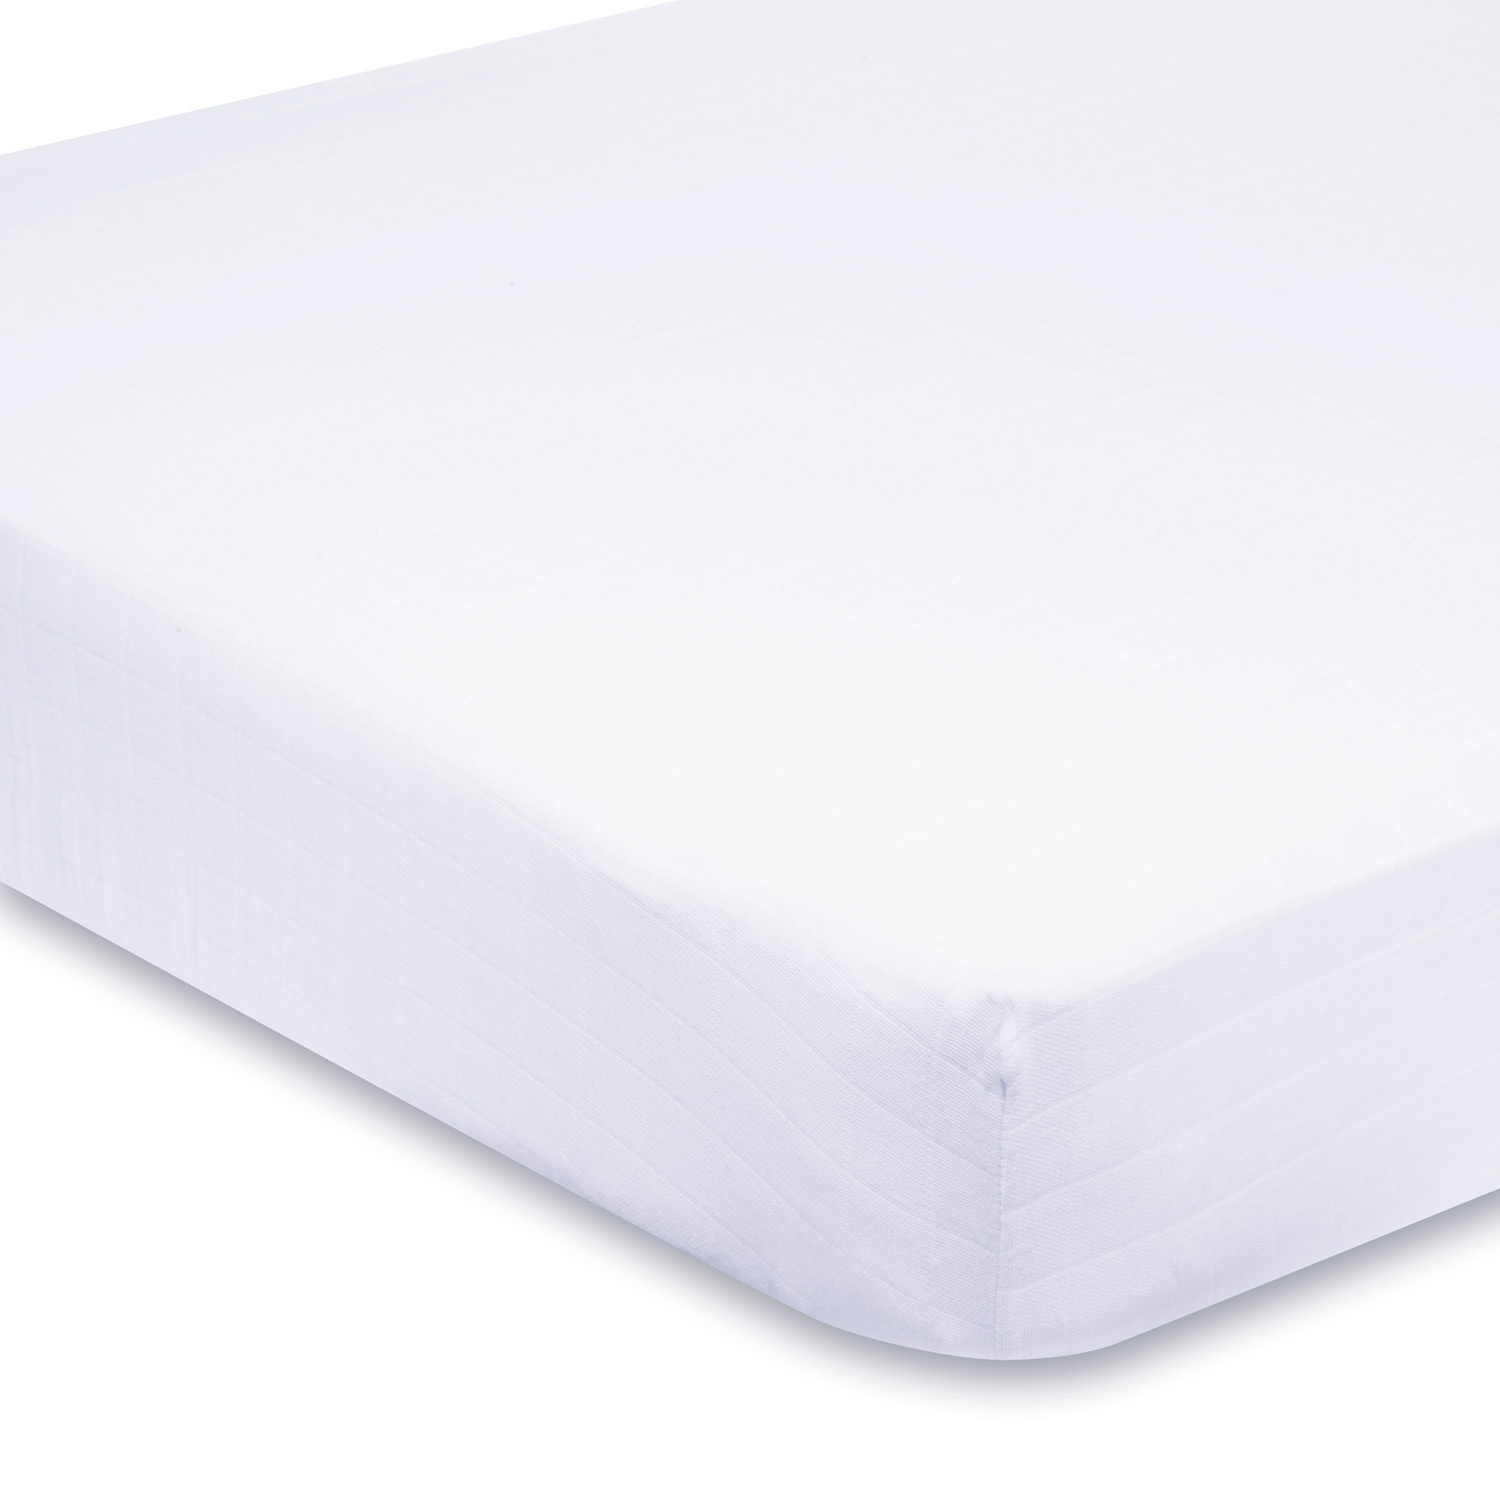 % Cotton Fitted Sheets. Home. Bedding. Bed Sheets. % Cotton Fitted Sheets. Showing 40 of results that match your query. Search Product Result. Product - Fitted Bottom Sheet % Cotton Velvet Flannel - Extra Soft Heavweight - Double Brushed Flannel - .